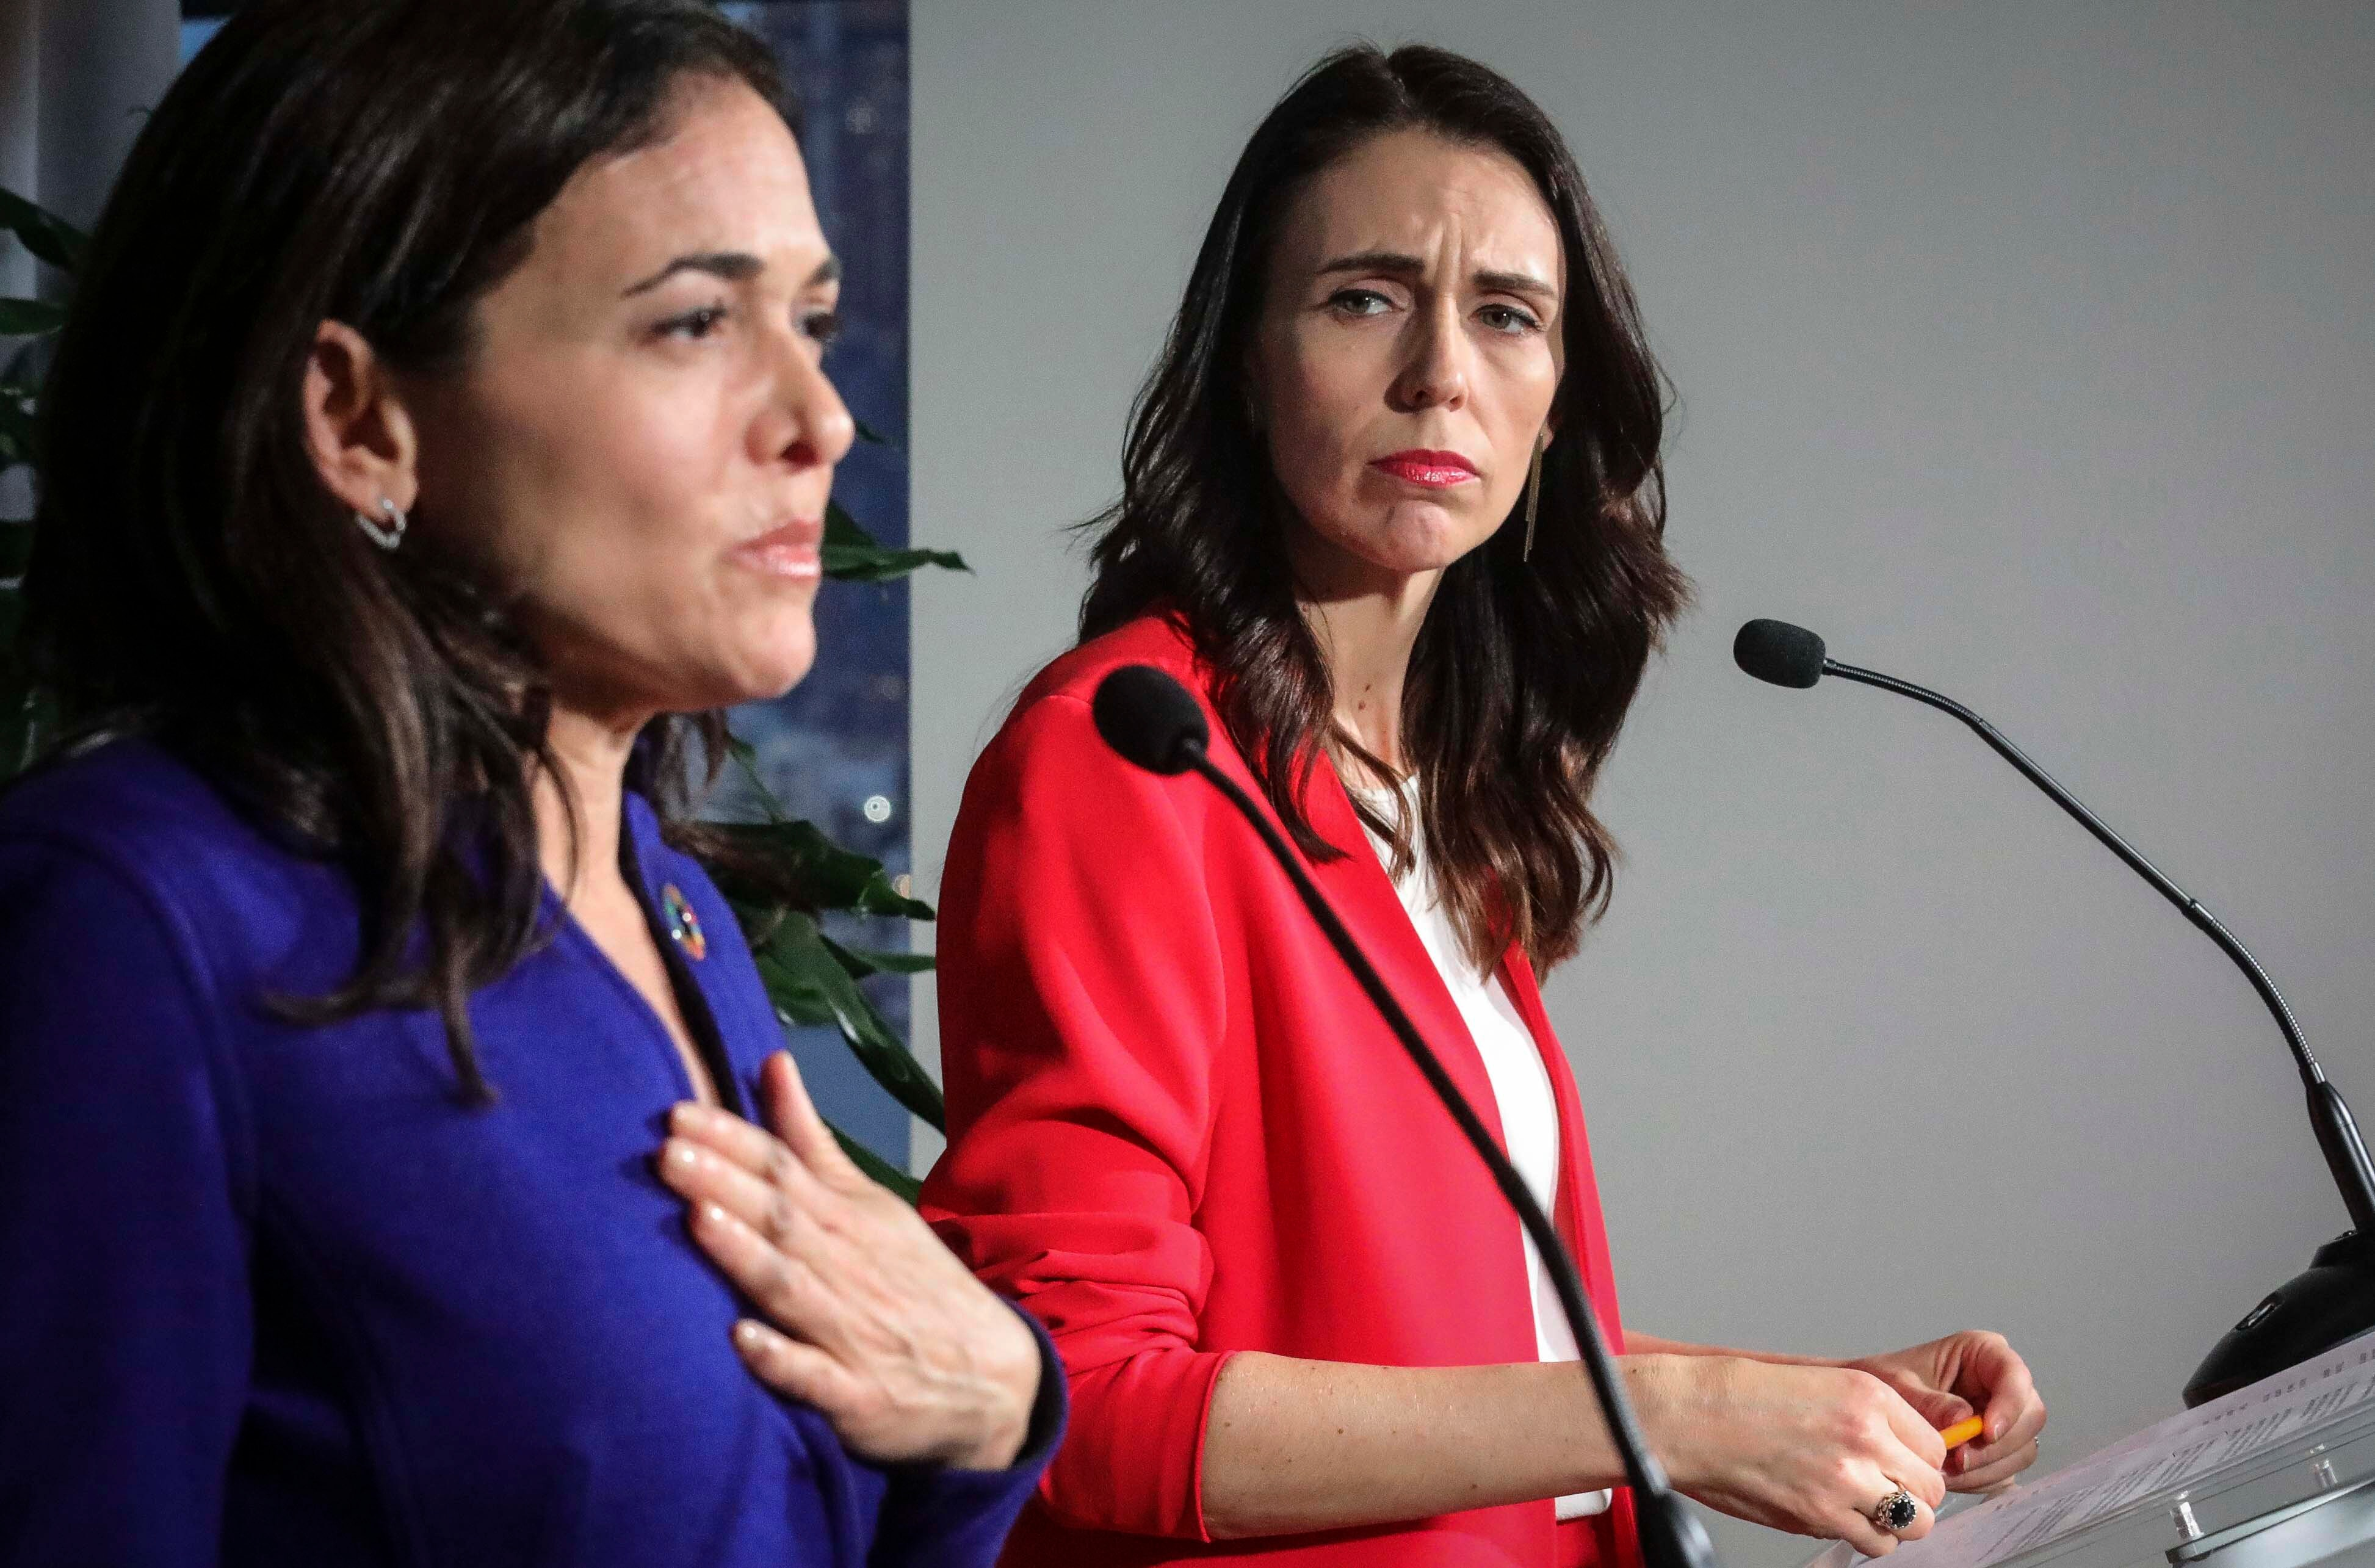 New Zealand Prime Minister Jacinda Ardern at the UN climate action summit in New York.